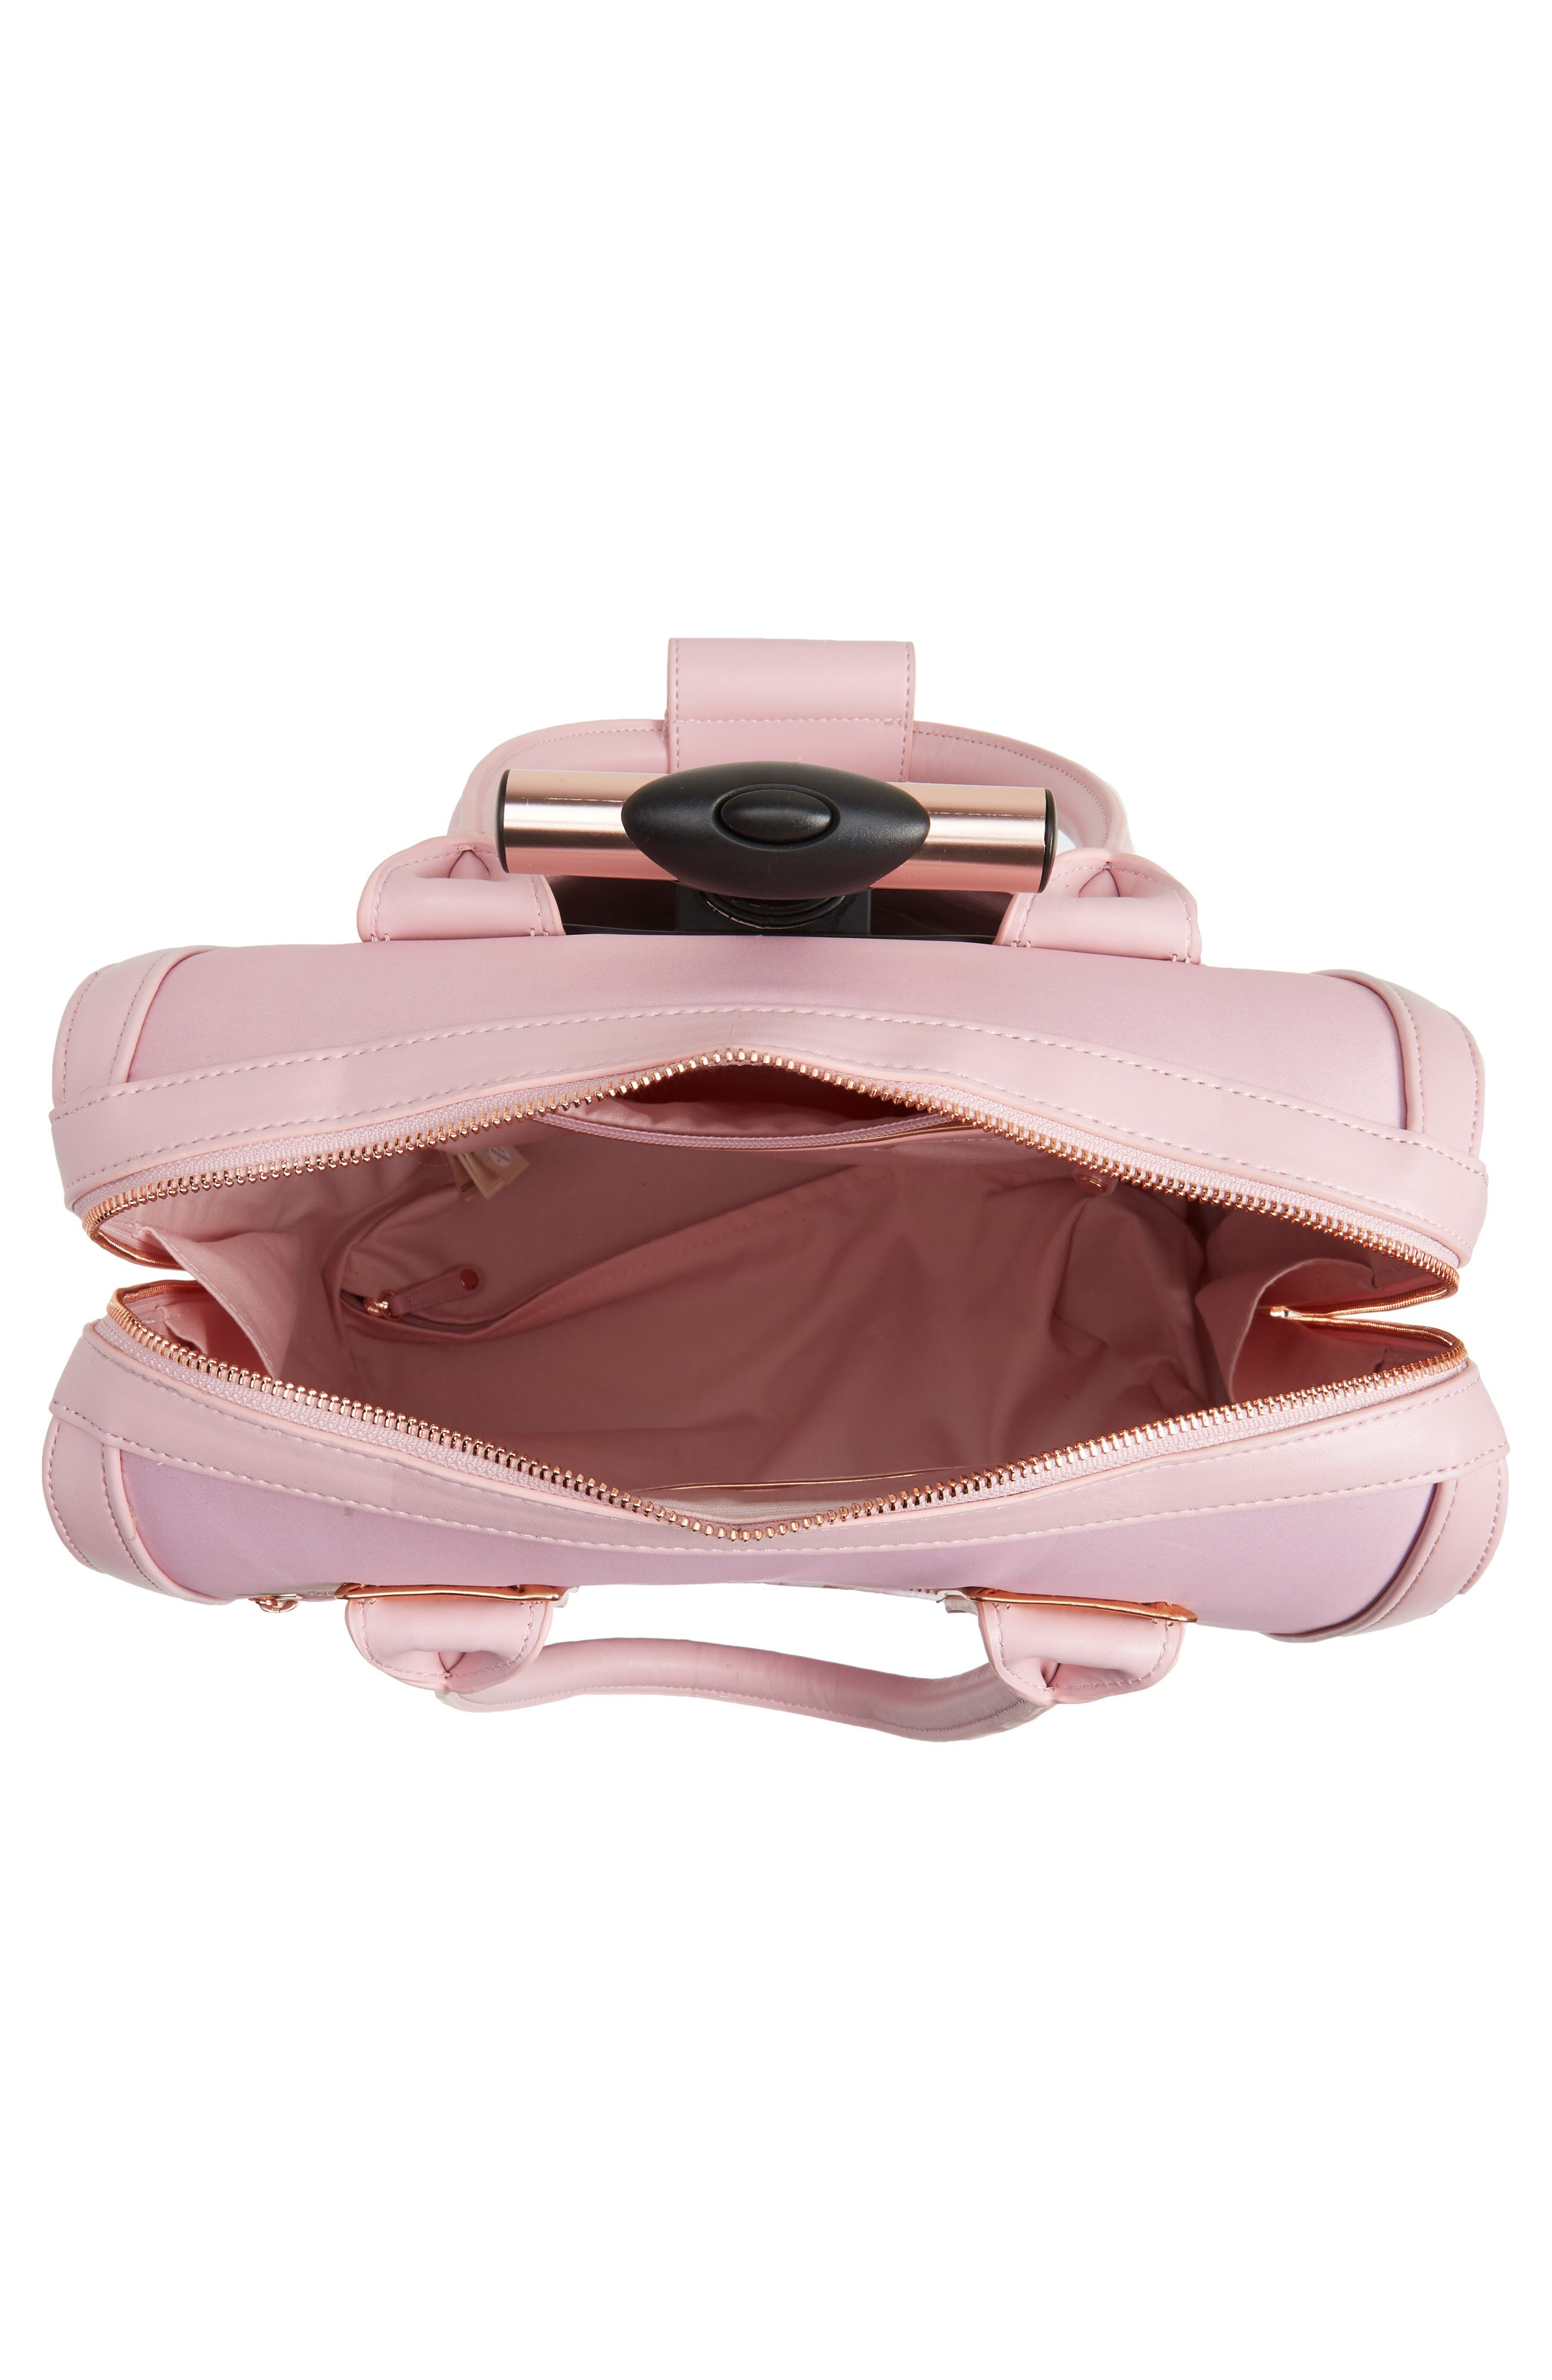 Caliie Harmony Rolling Faux Leather Travel Bag,                             Alternate thumbnail 2, color,                             Pale Pink